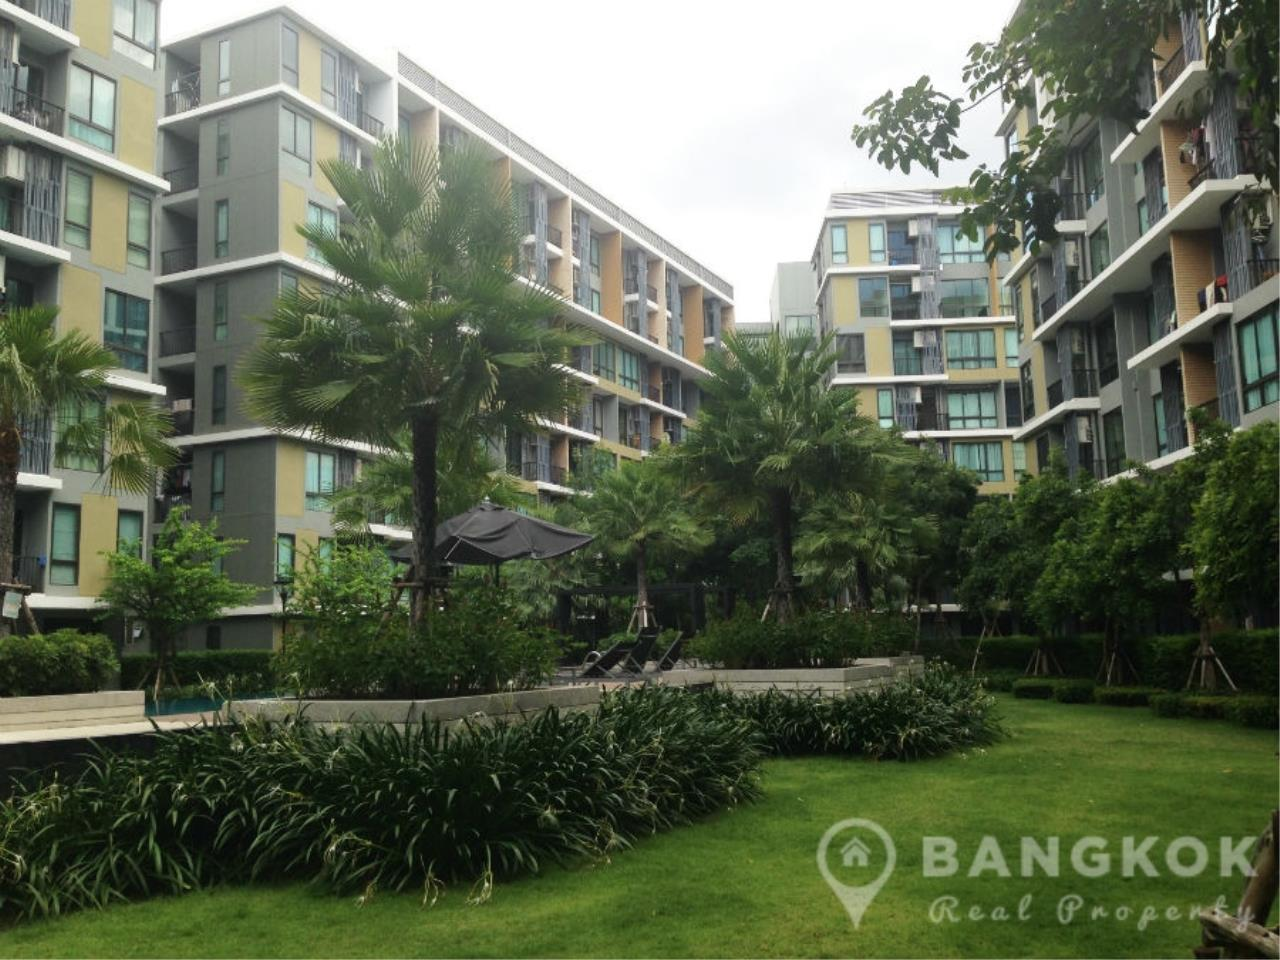 Bangkok Real Property Agency's ICondo Sukhumvit 103 | Modern 1 Bed 1 Bath with Garden View in Udomsuk 9